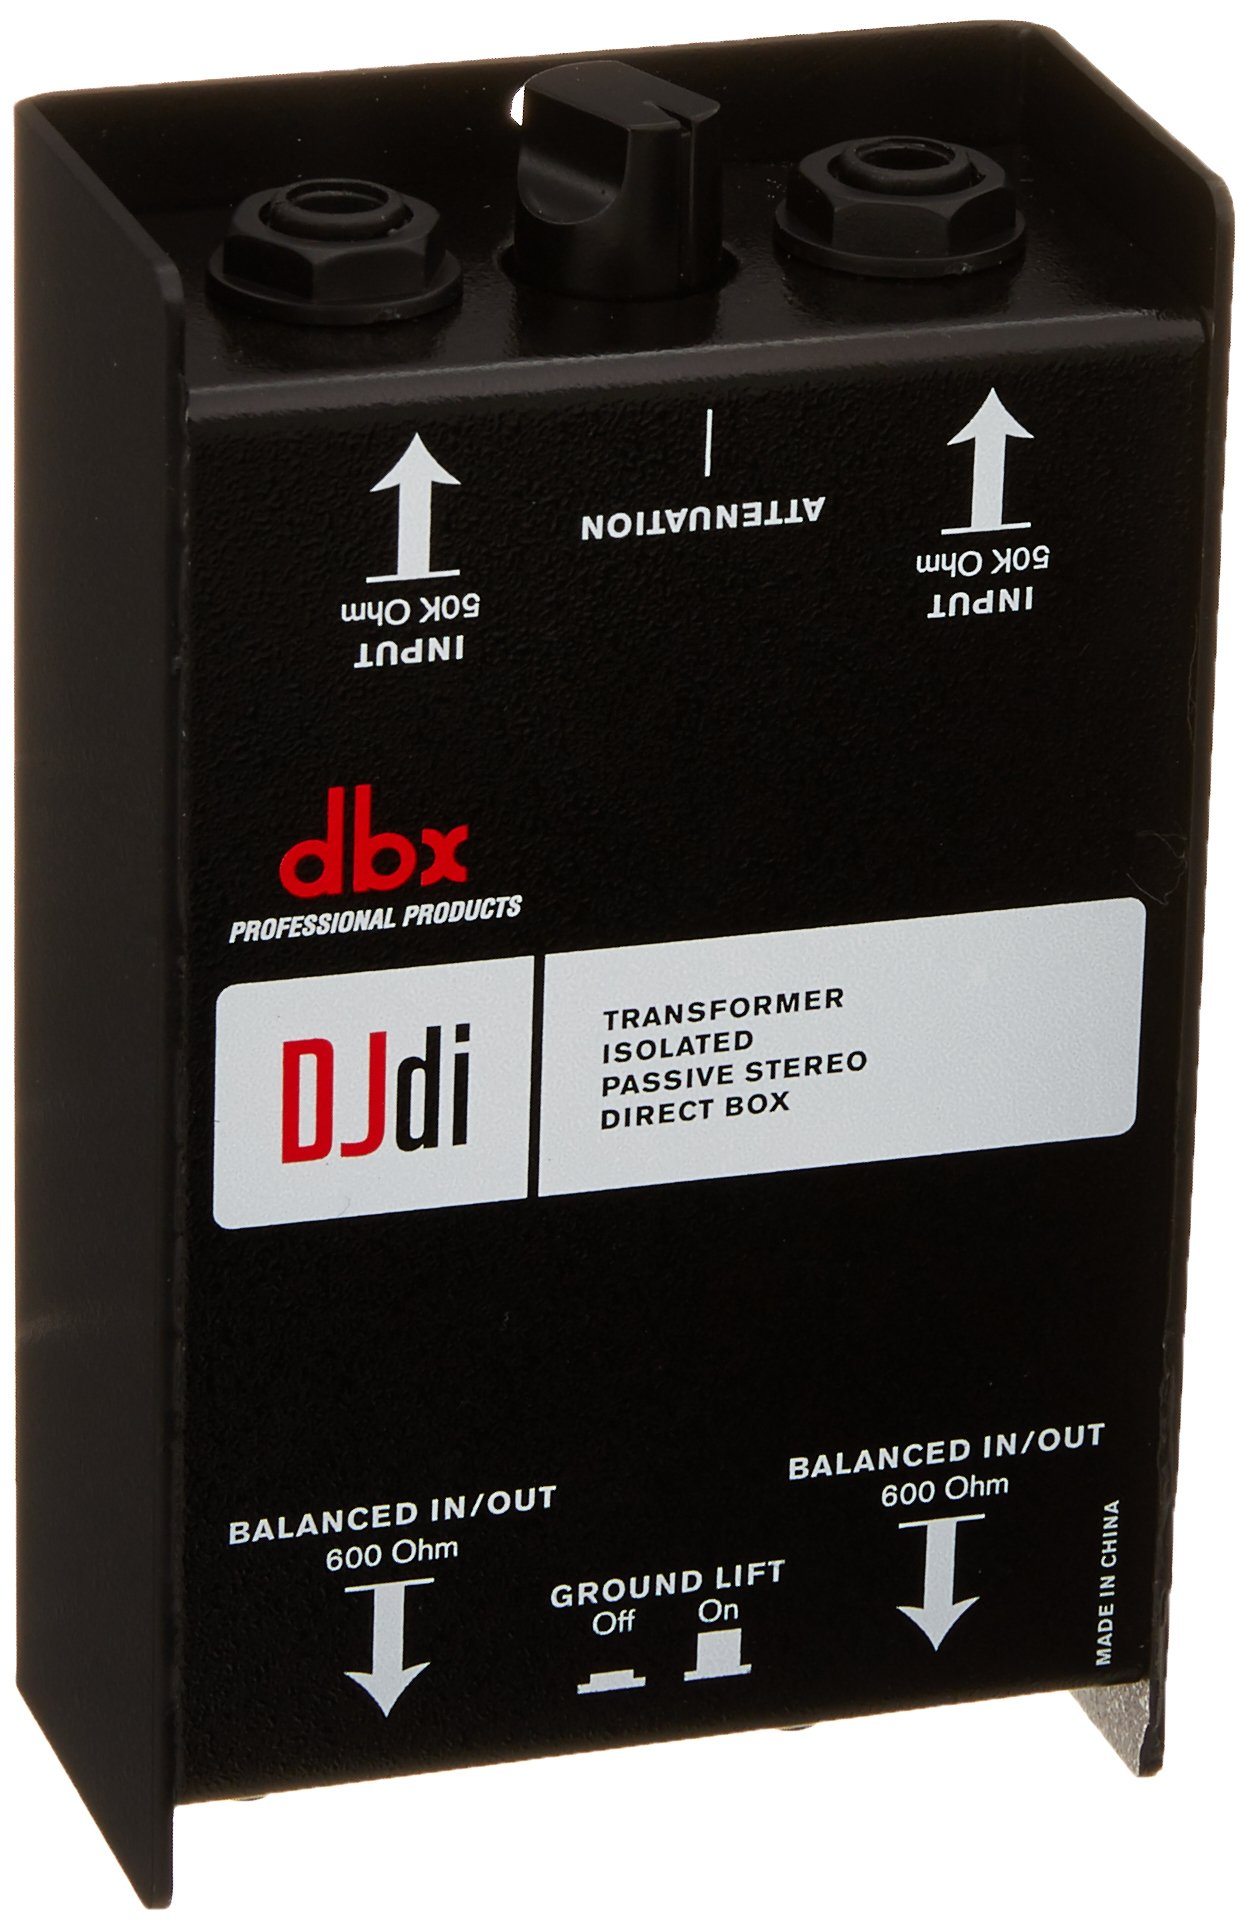 dbx DJdi Passive 2-Channel Direct Box with Line Mixer by DBX